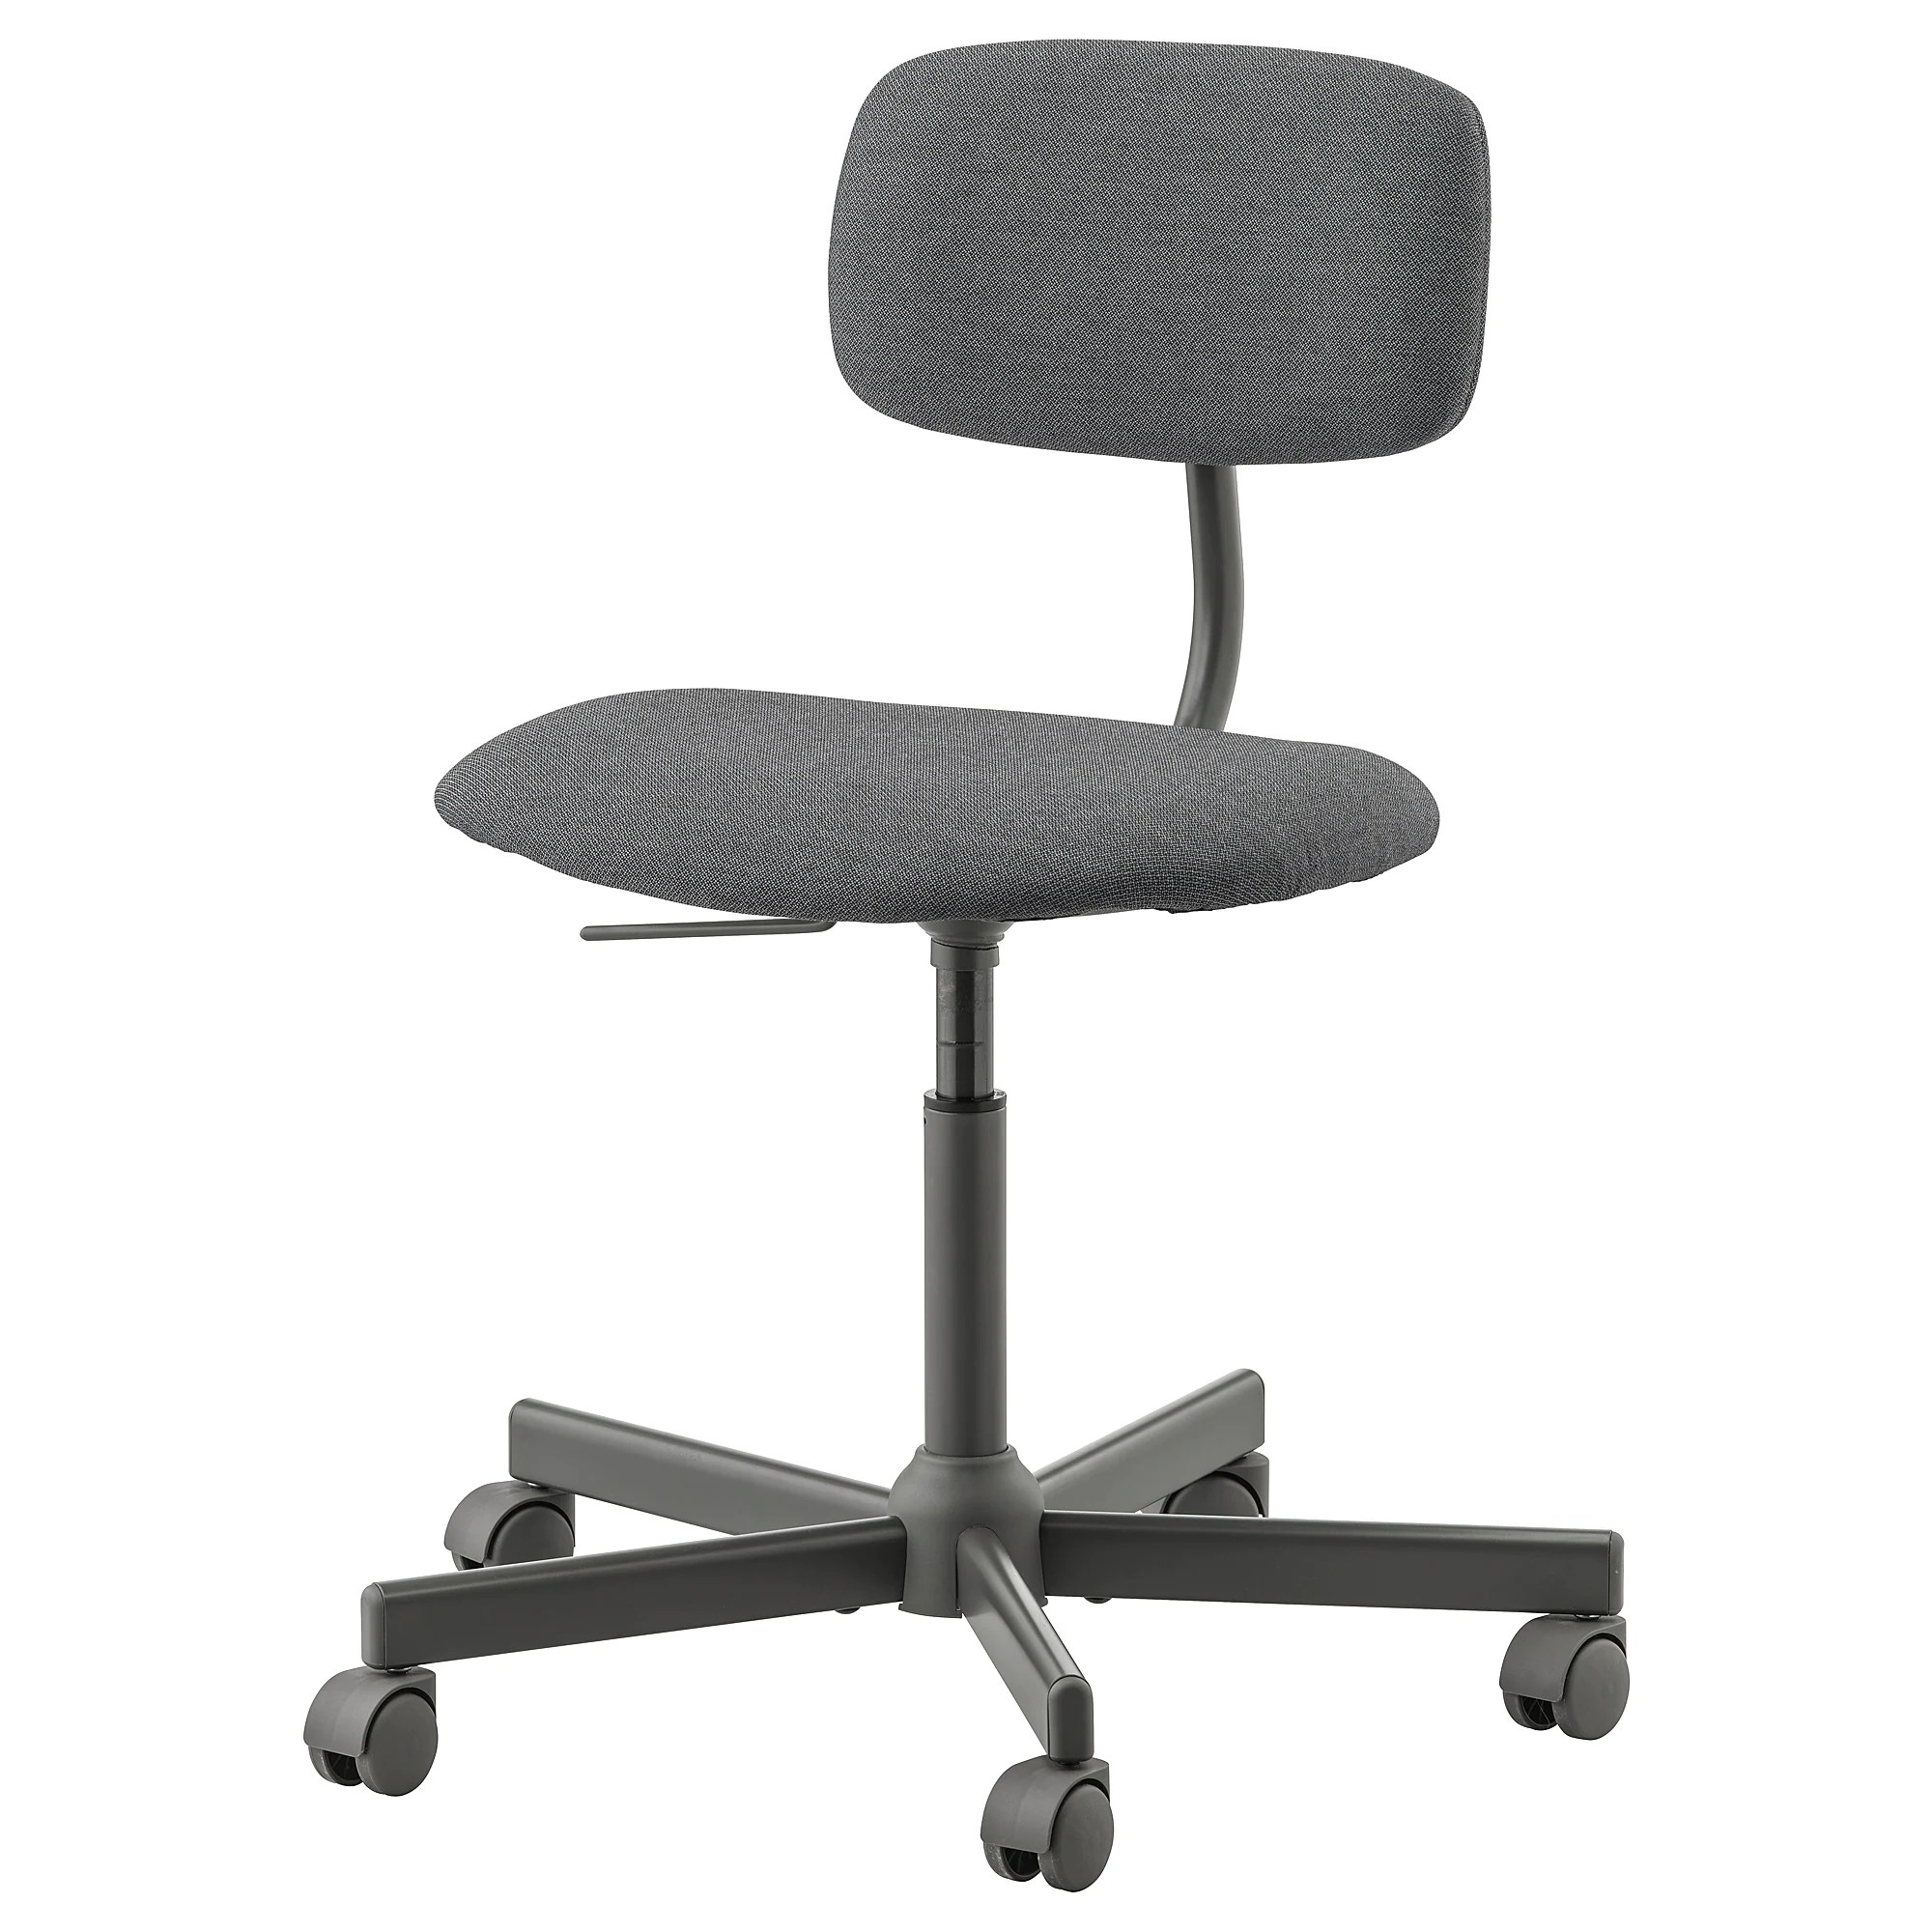 Work Chair Bleckberget Swivel Chair Idekulla Beige